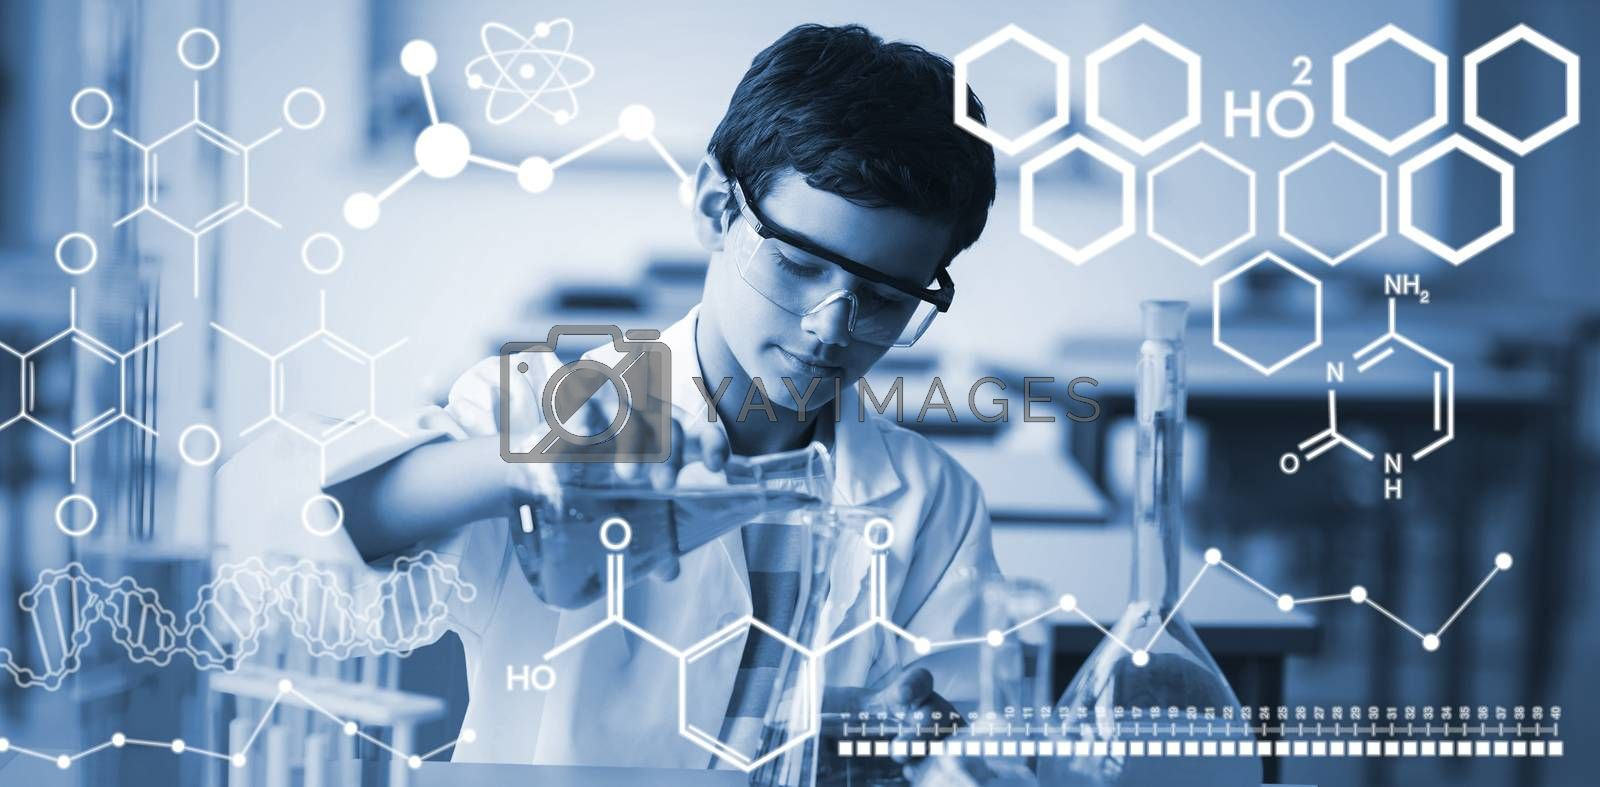 Composite image of digital image of chemical structure by Wavebreakmedia